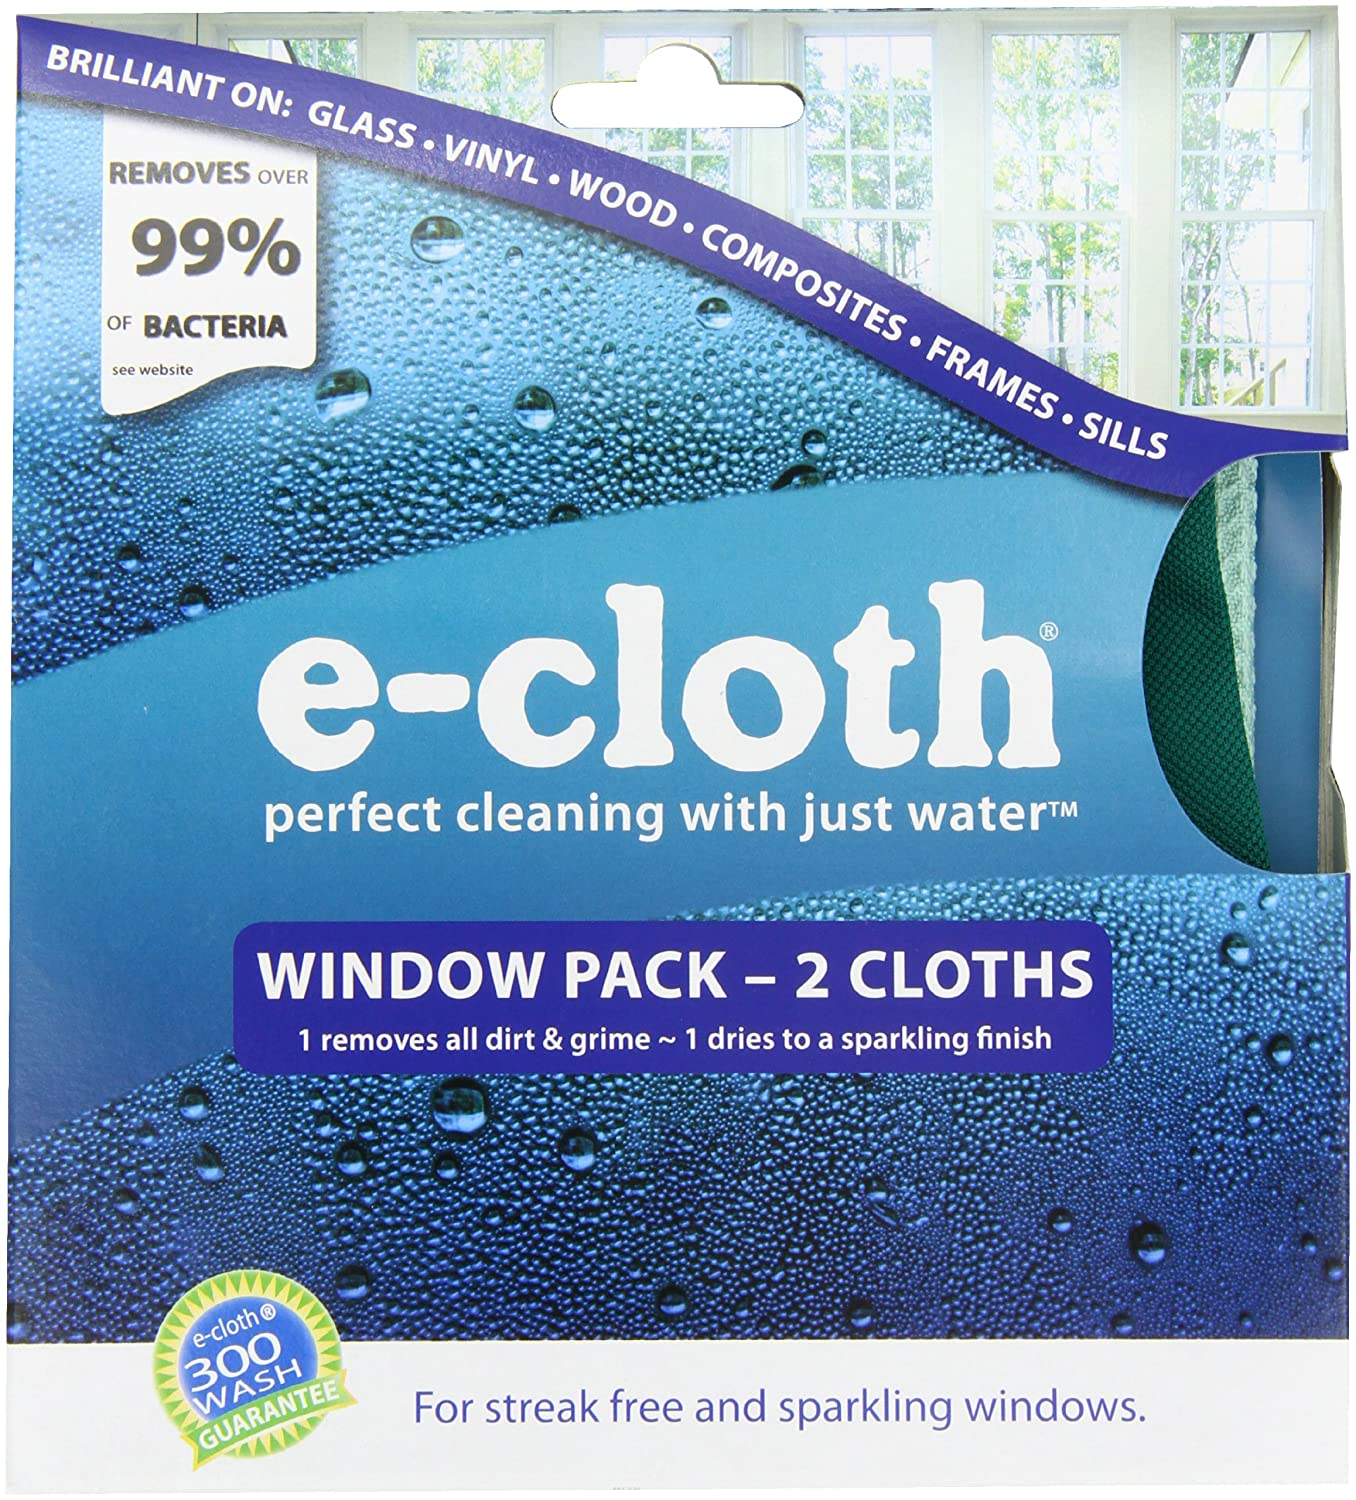 E cloth window cleaning pack 2 piece new free shipping - Best cloth for cleaning windows ...